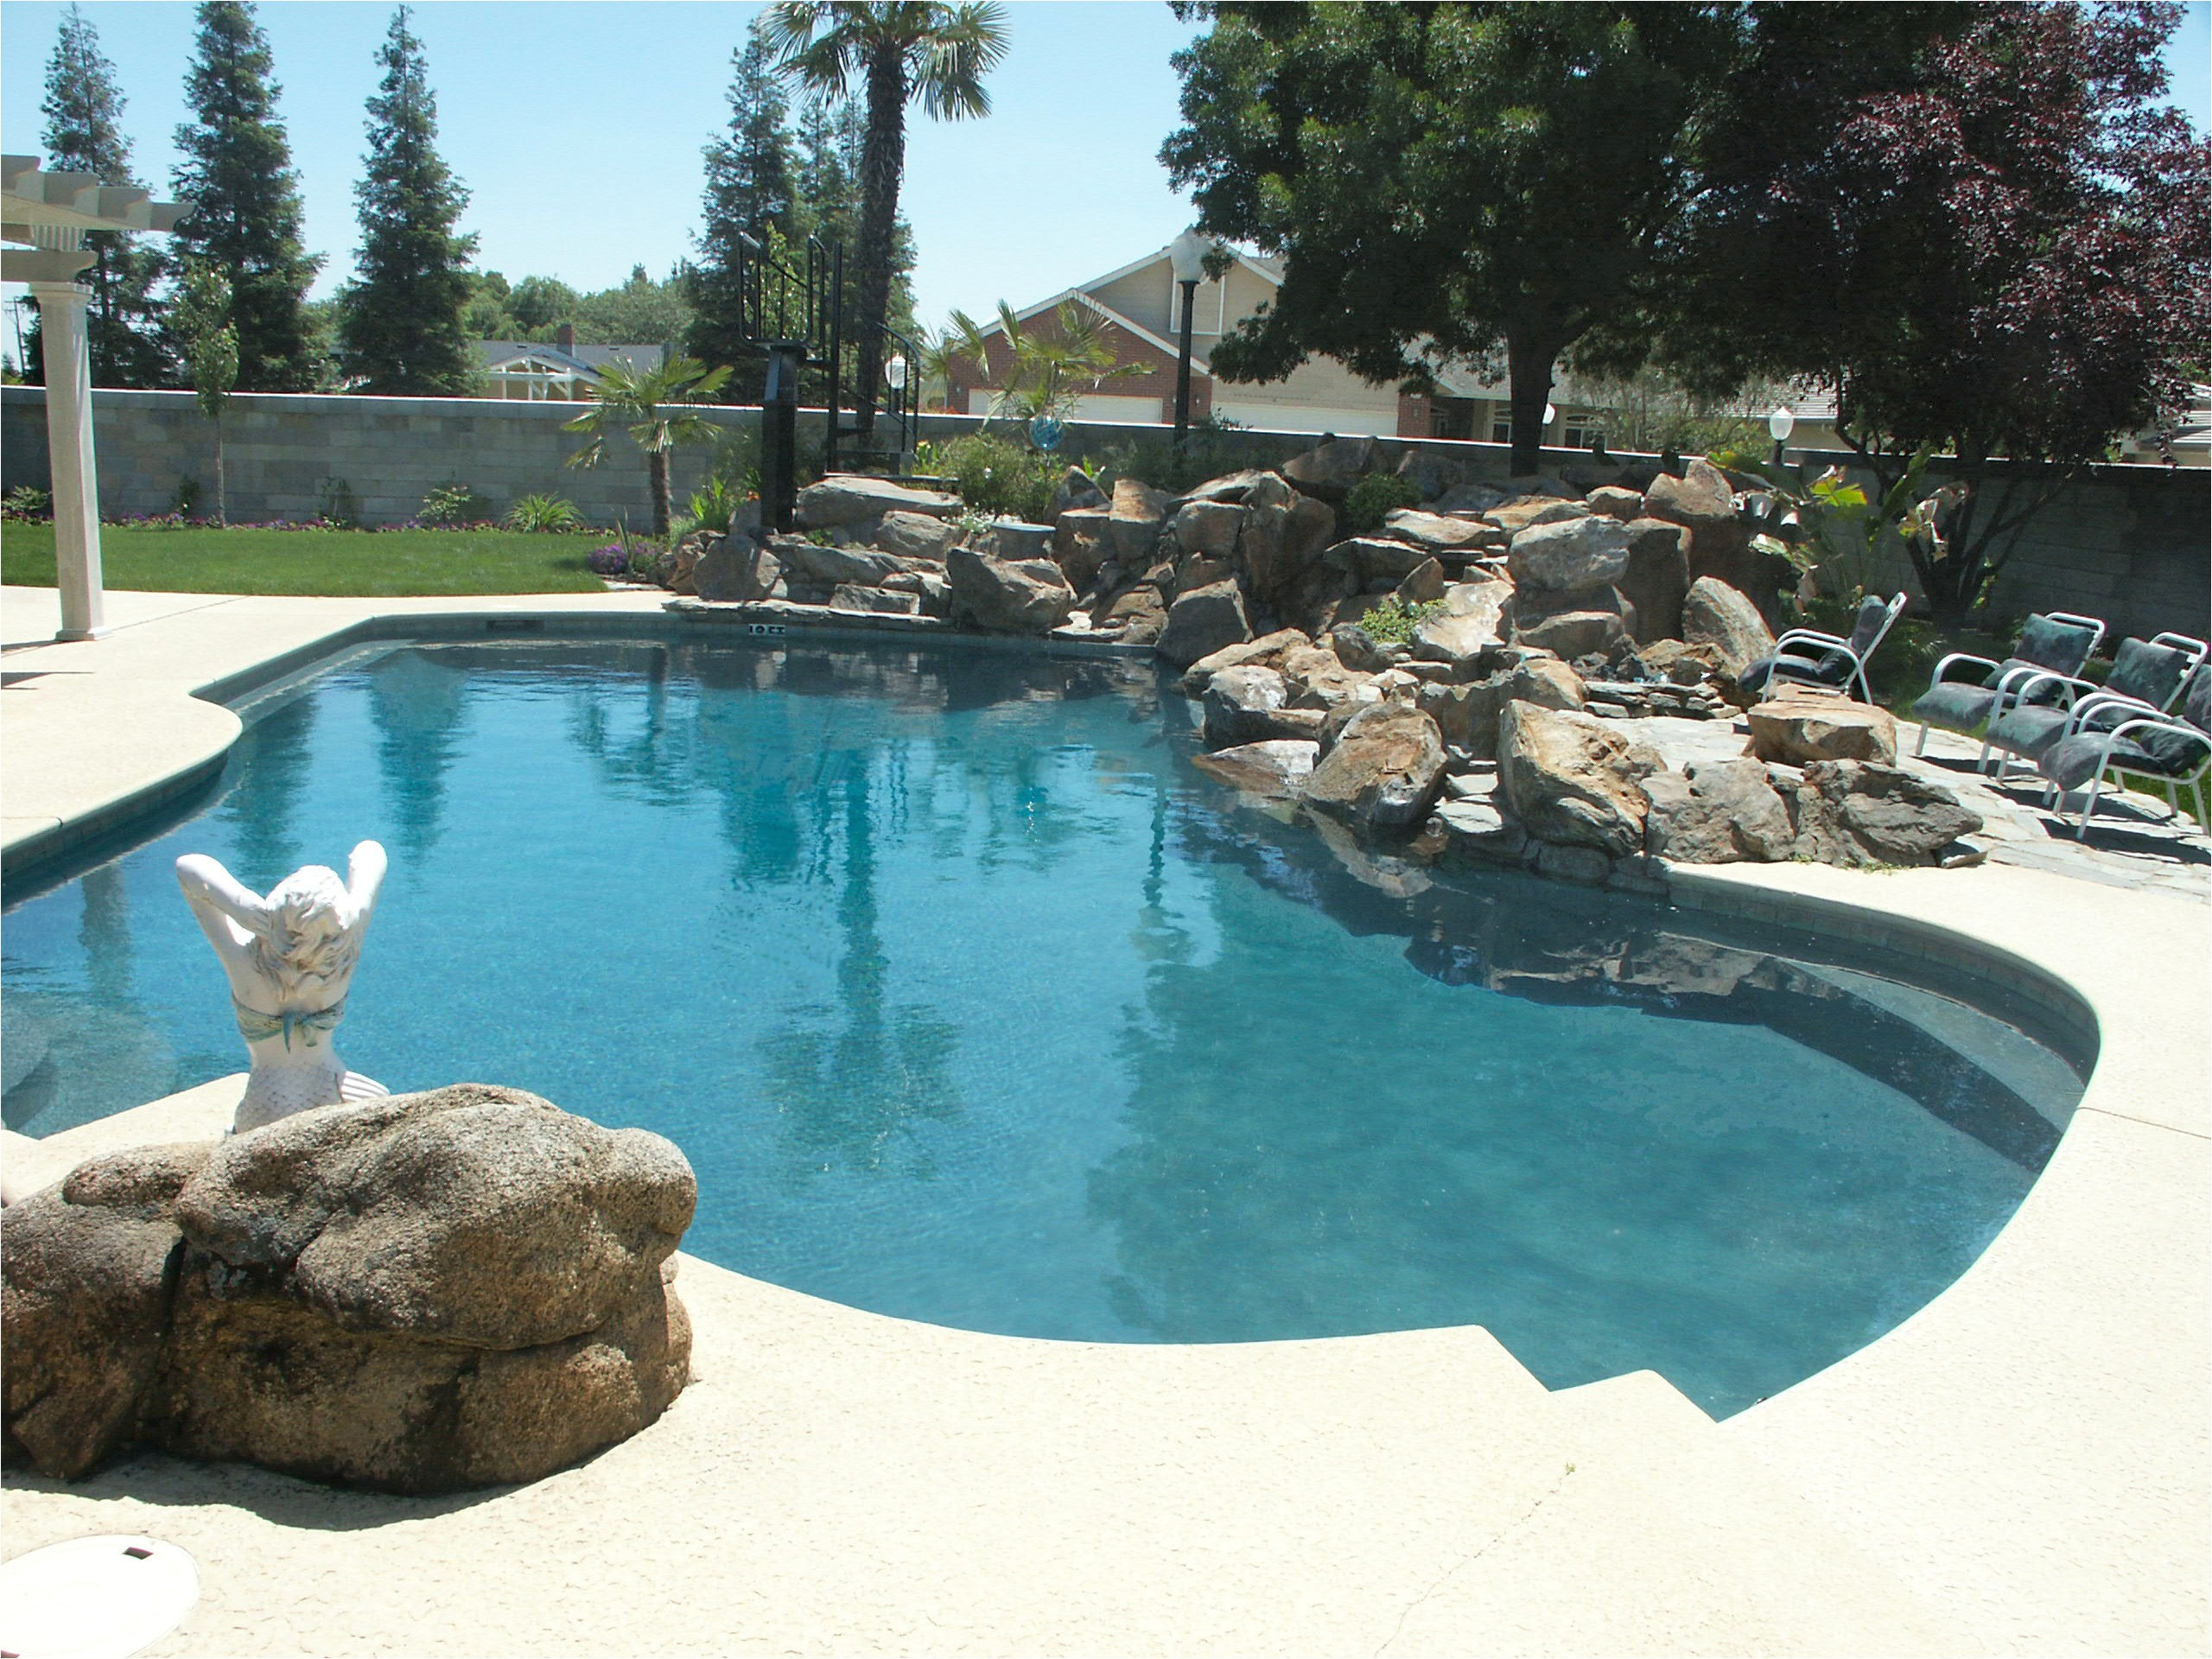 pools by waterston swimming pool construction remodel maintenance design consulting cleaning repair plaster fresno ca